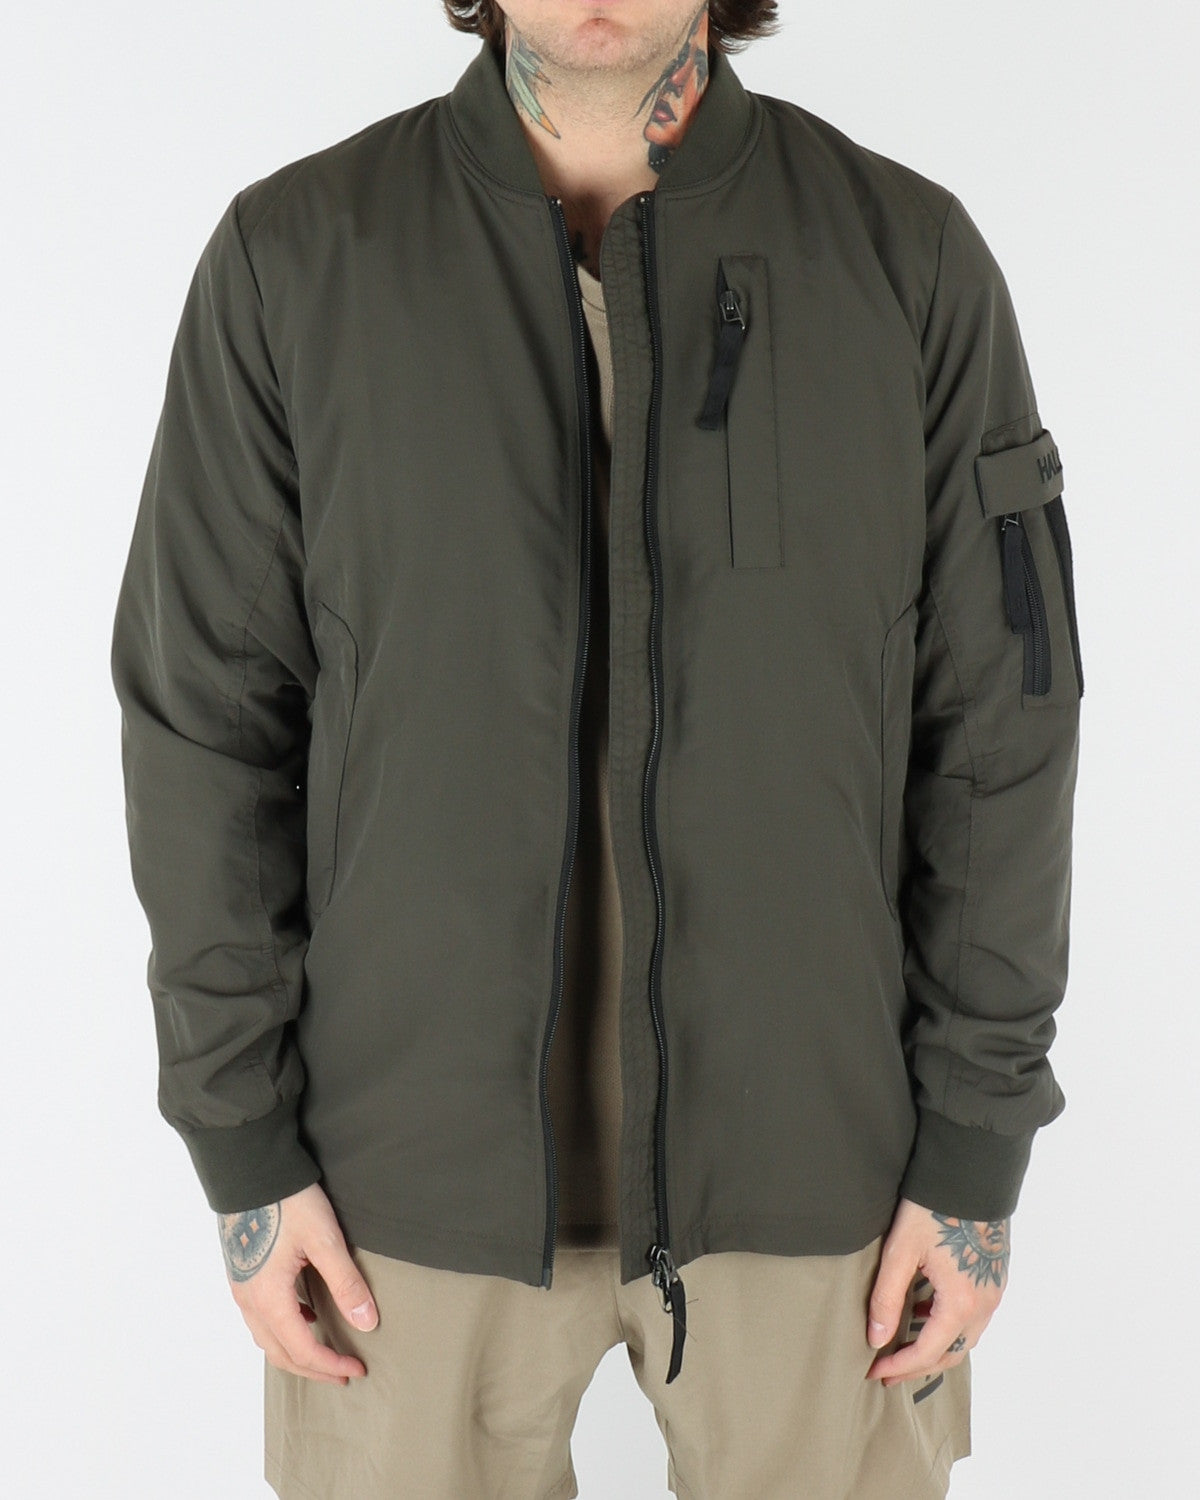 newline halo_flight jacket_c-130_olive_view_1_2